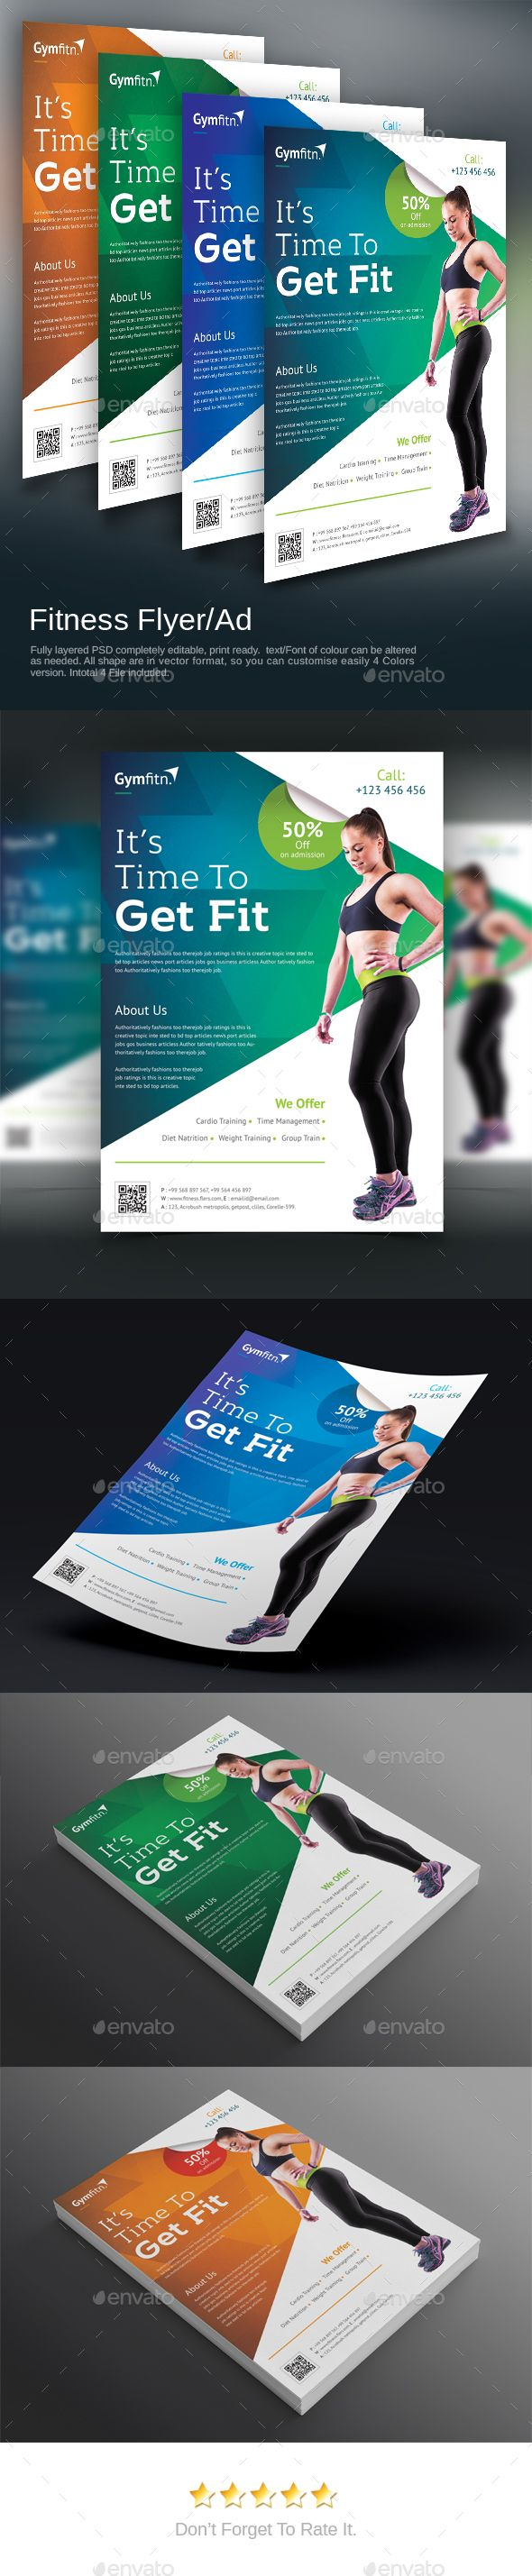 Fitness Flyer - #Sports #Events Download here: https://graphicriver ...